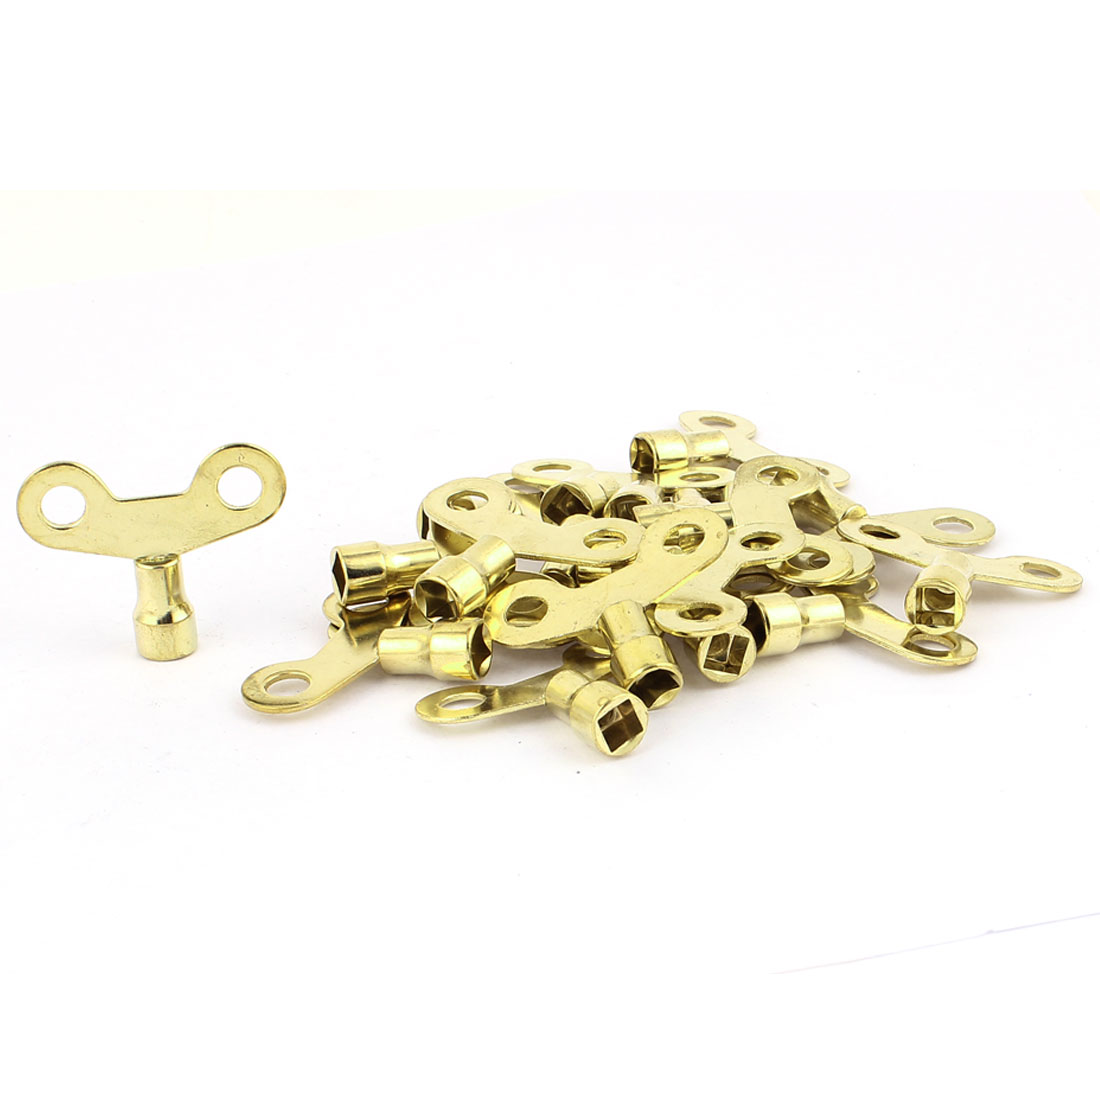 6mm x 6mm Square Socket Hole Water Tap Faucet Key Knob Switch Gold Tone 20 Pcs